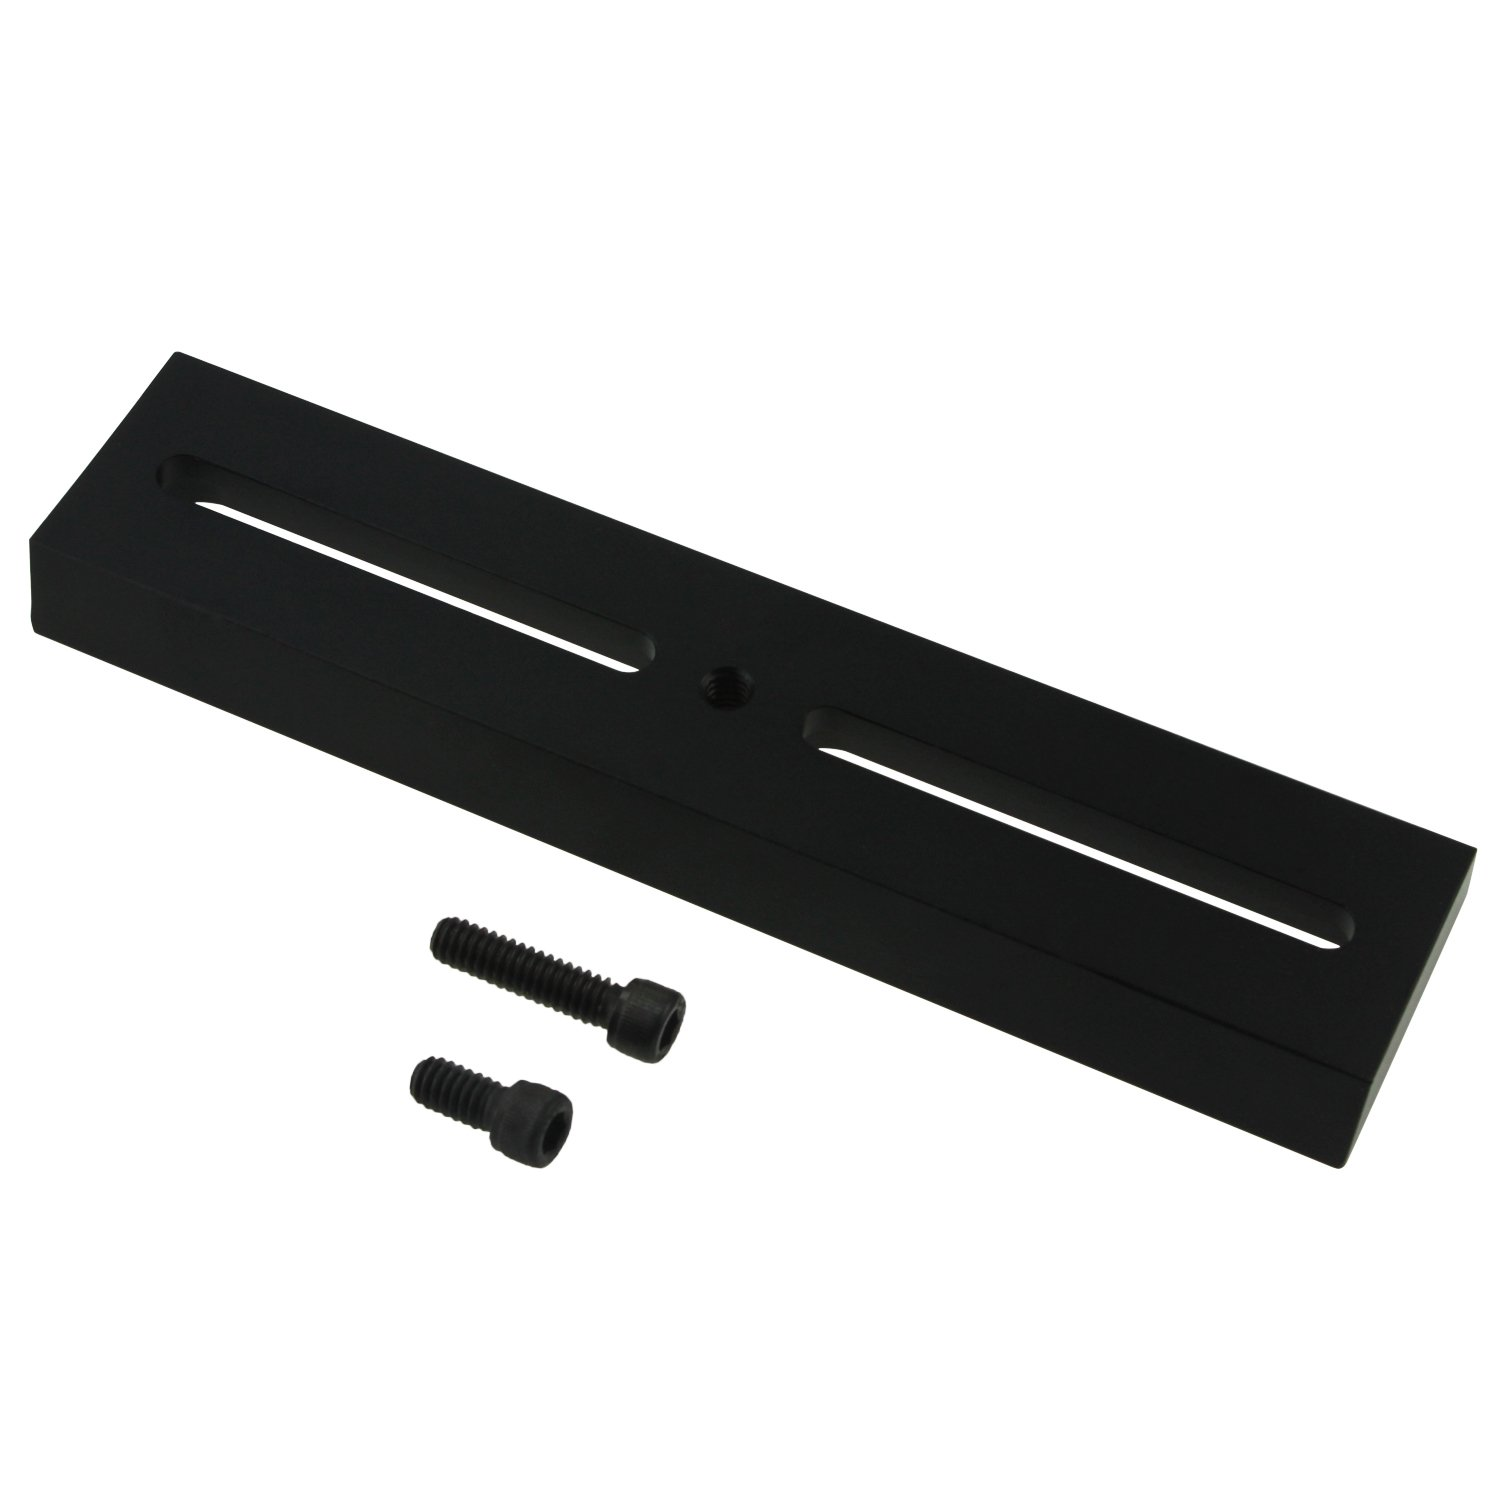 Astromania Improve Vixen Style Plate with 1/4''-20 Photo Thread - Length 180MM - Used to Connect Cameras to Astronomical mounts with Vixen/GP Saddle Plate by Astromania